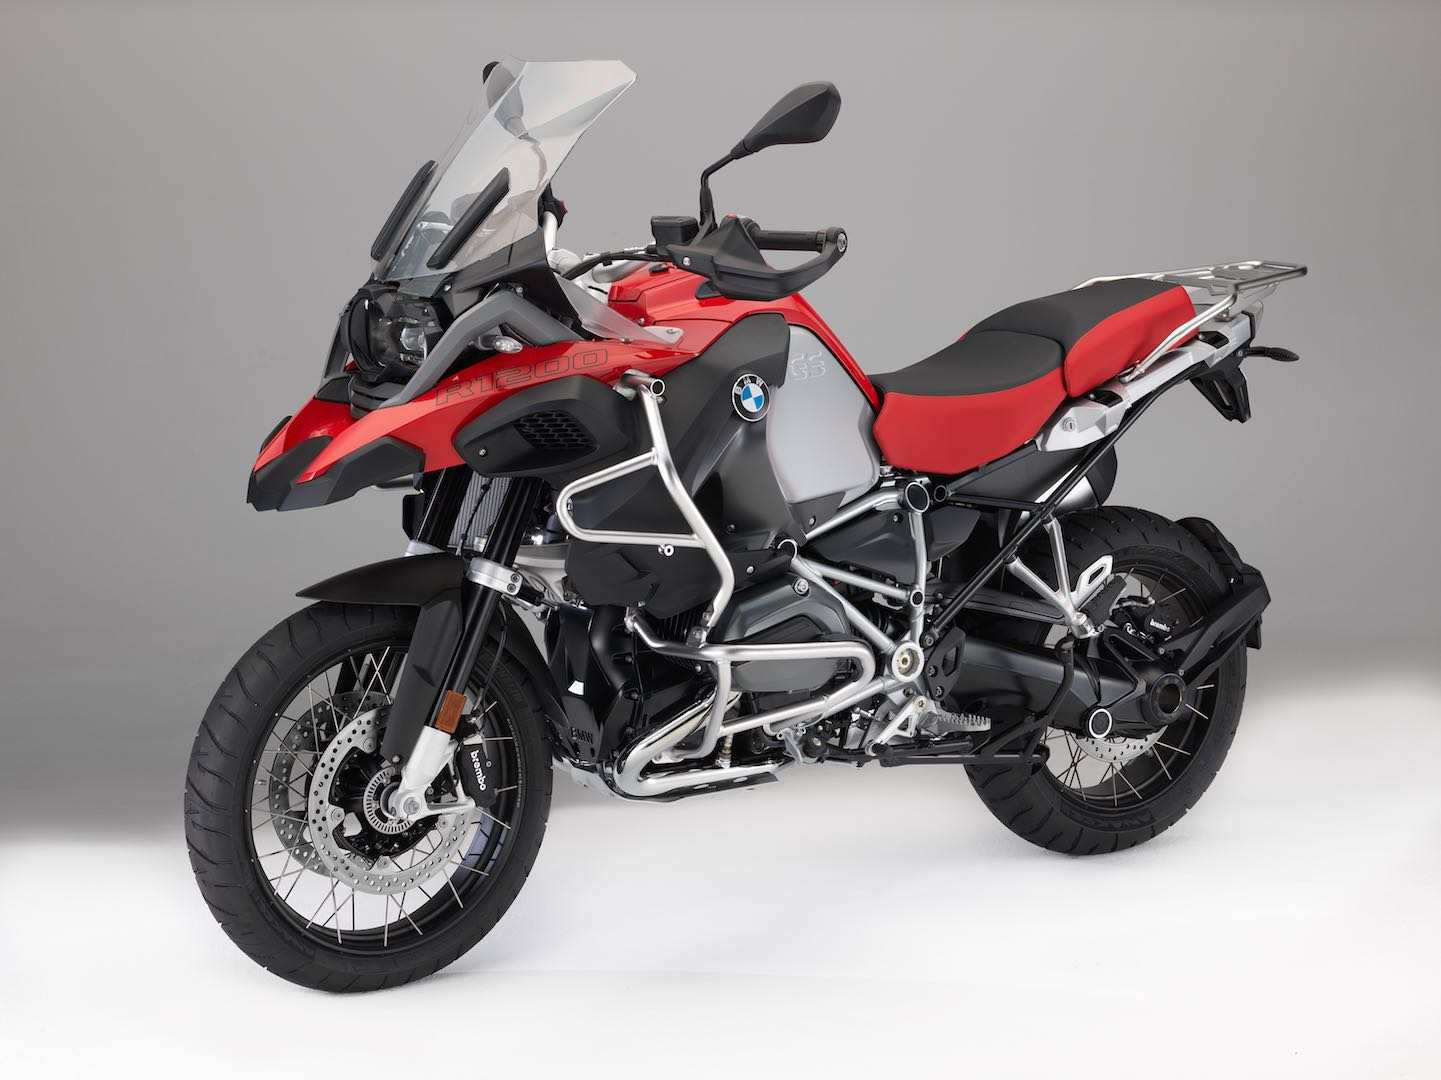 68 The Best 2020 Bmw R1200Gs Review And Release Date